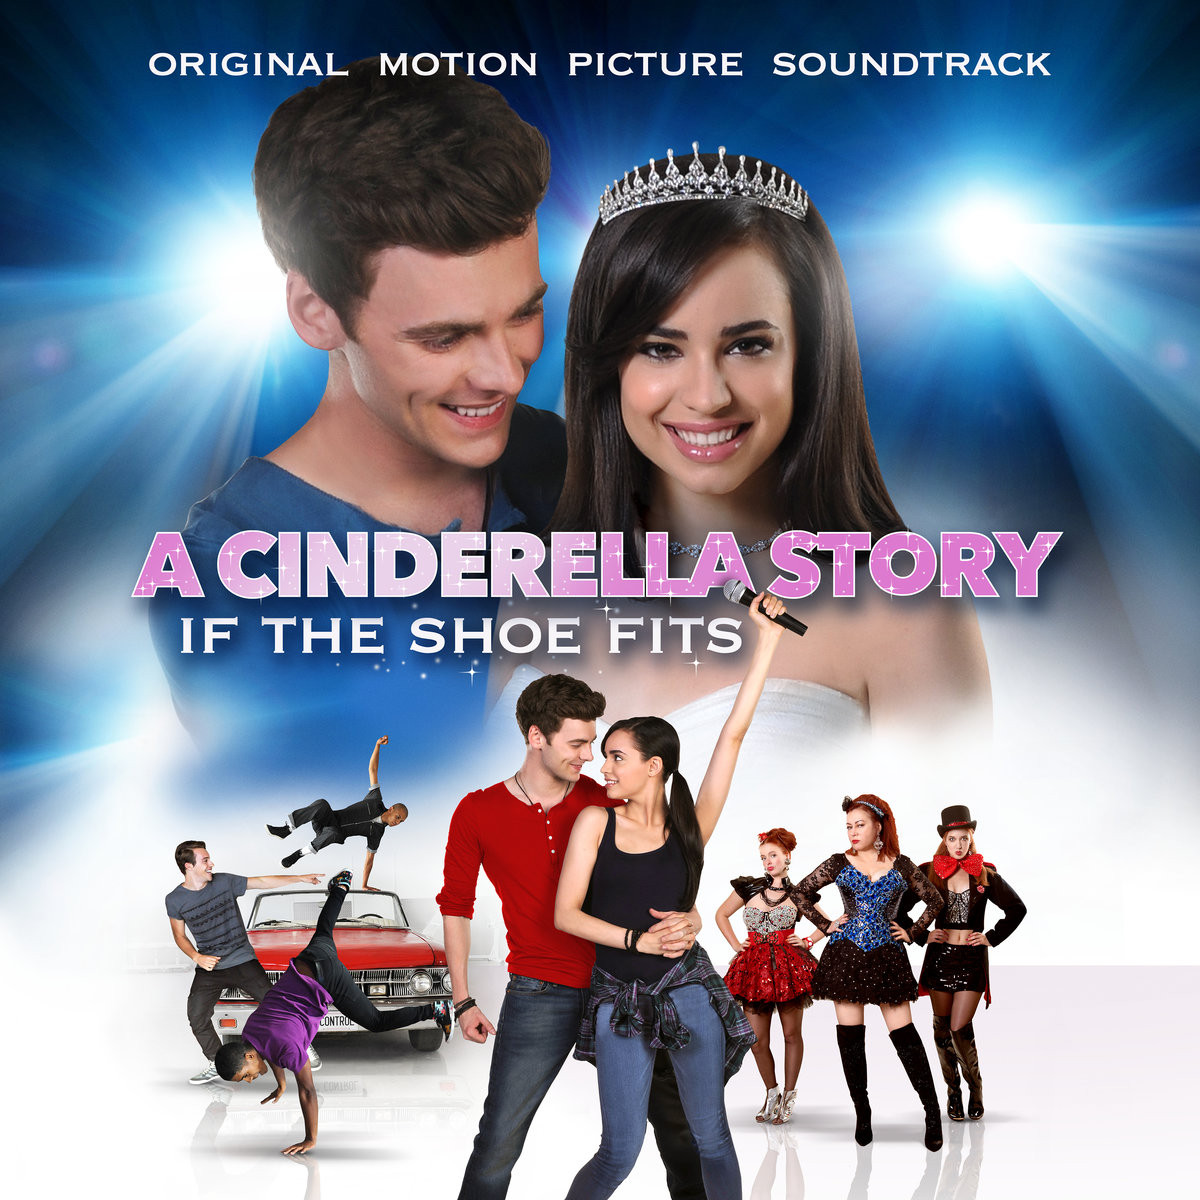 Cinderella Story 4 If The Shoe Fits Stream